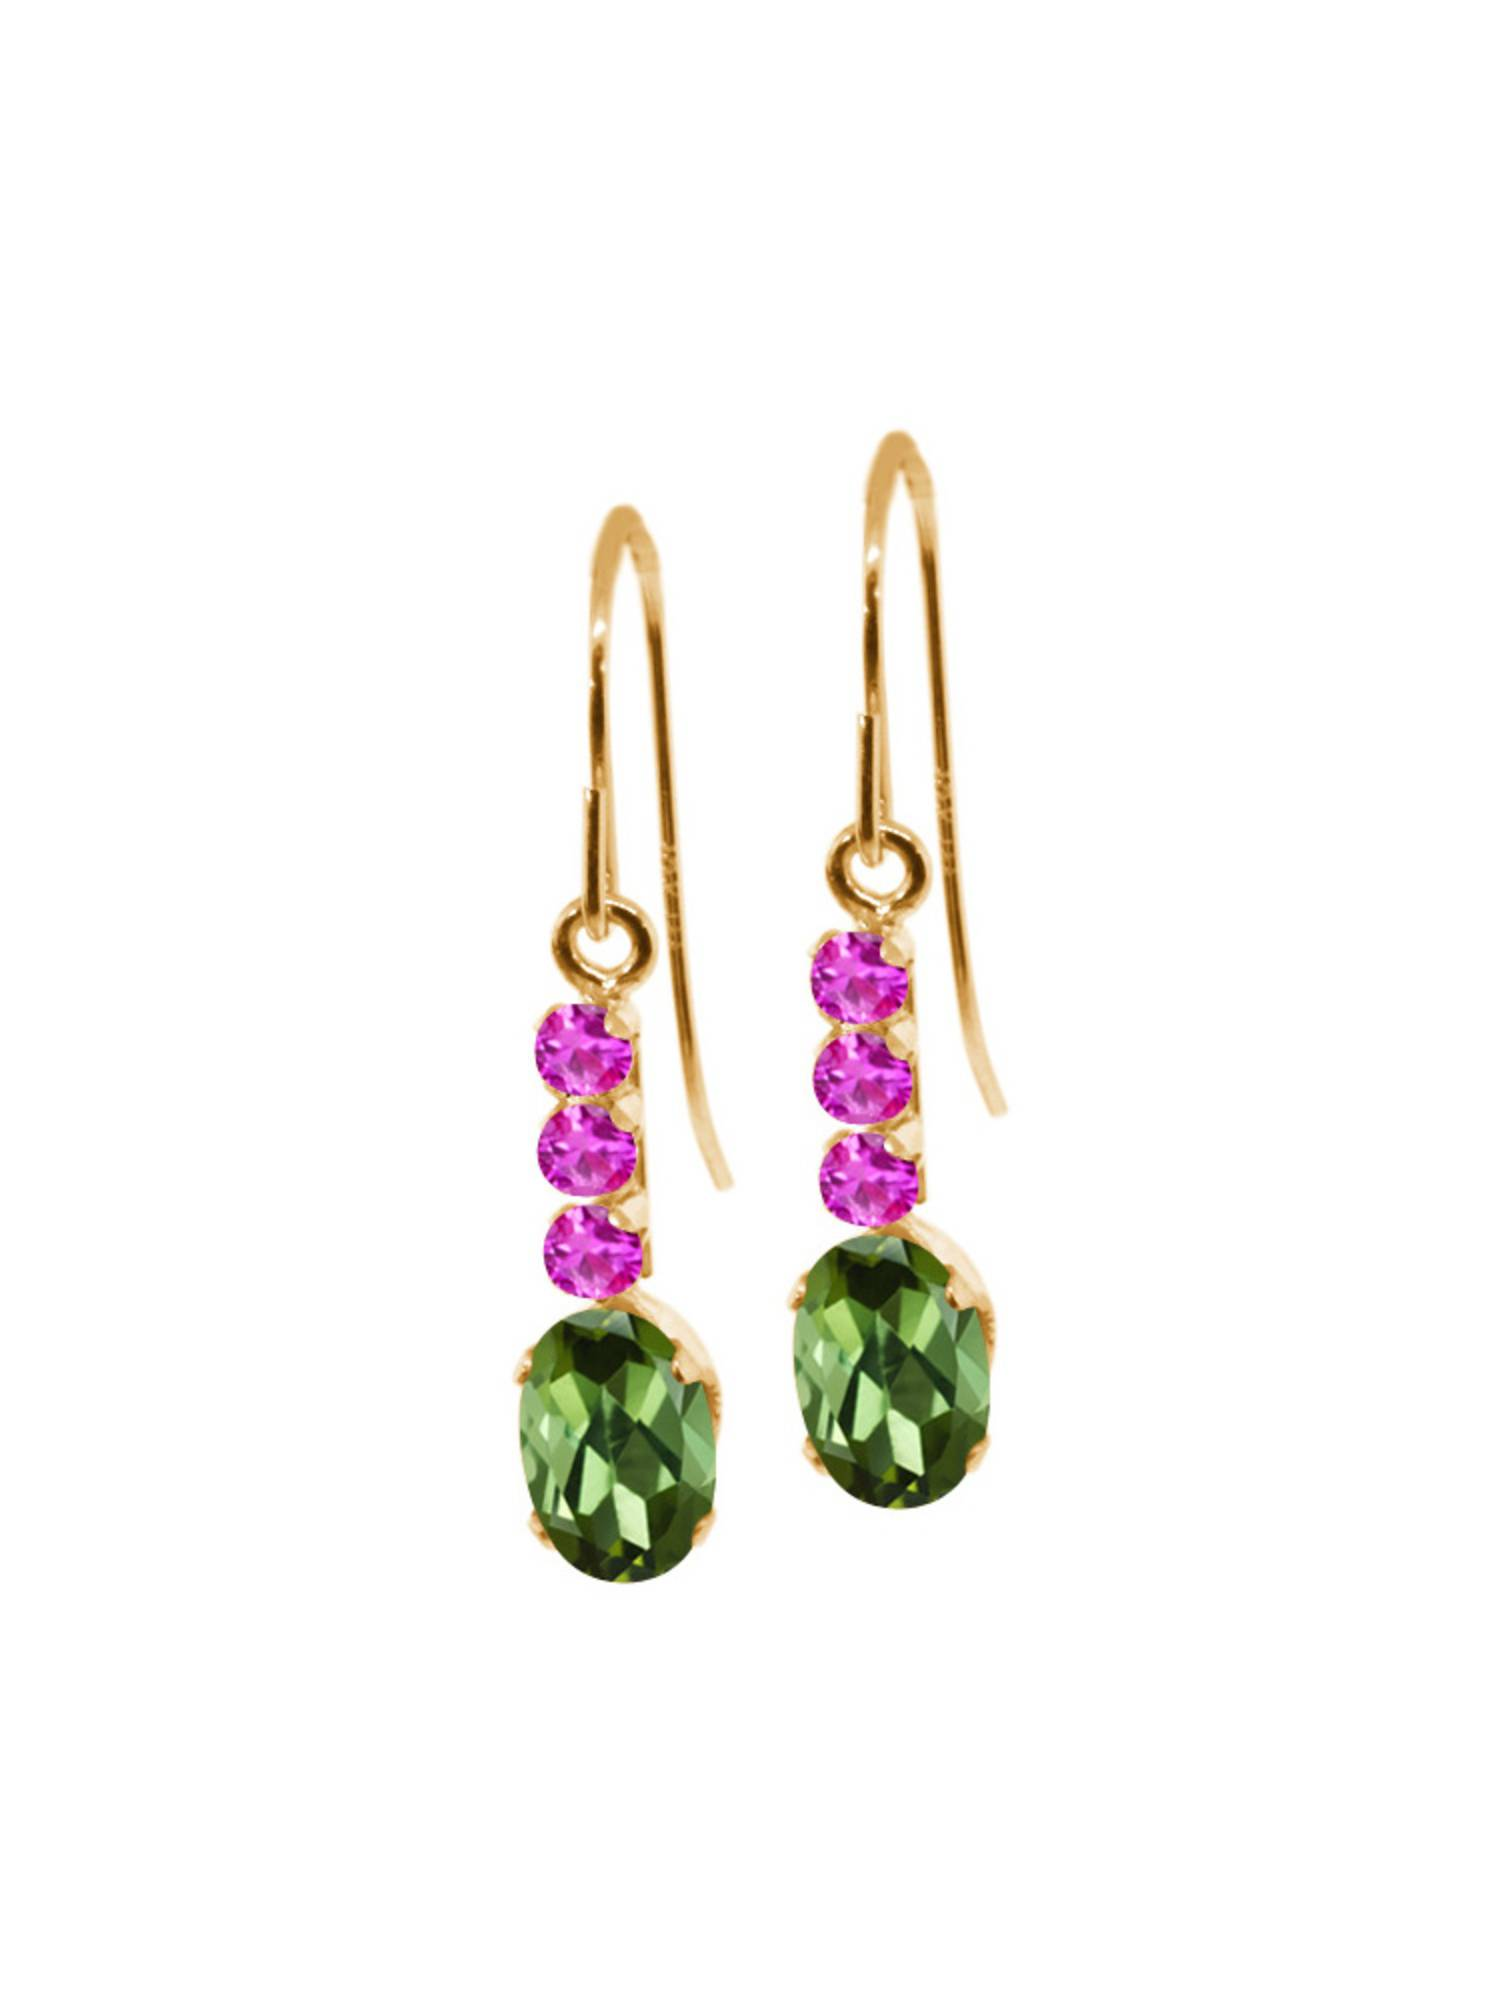 1.10 Ct Oval Green Tourmaline Pink Sapphire 10K Yellow Gold Earrings by